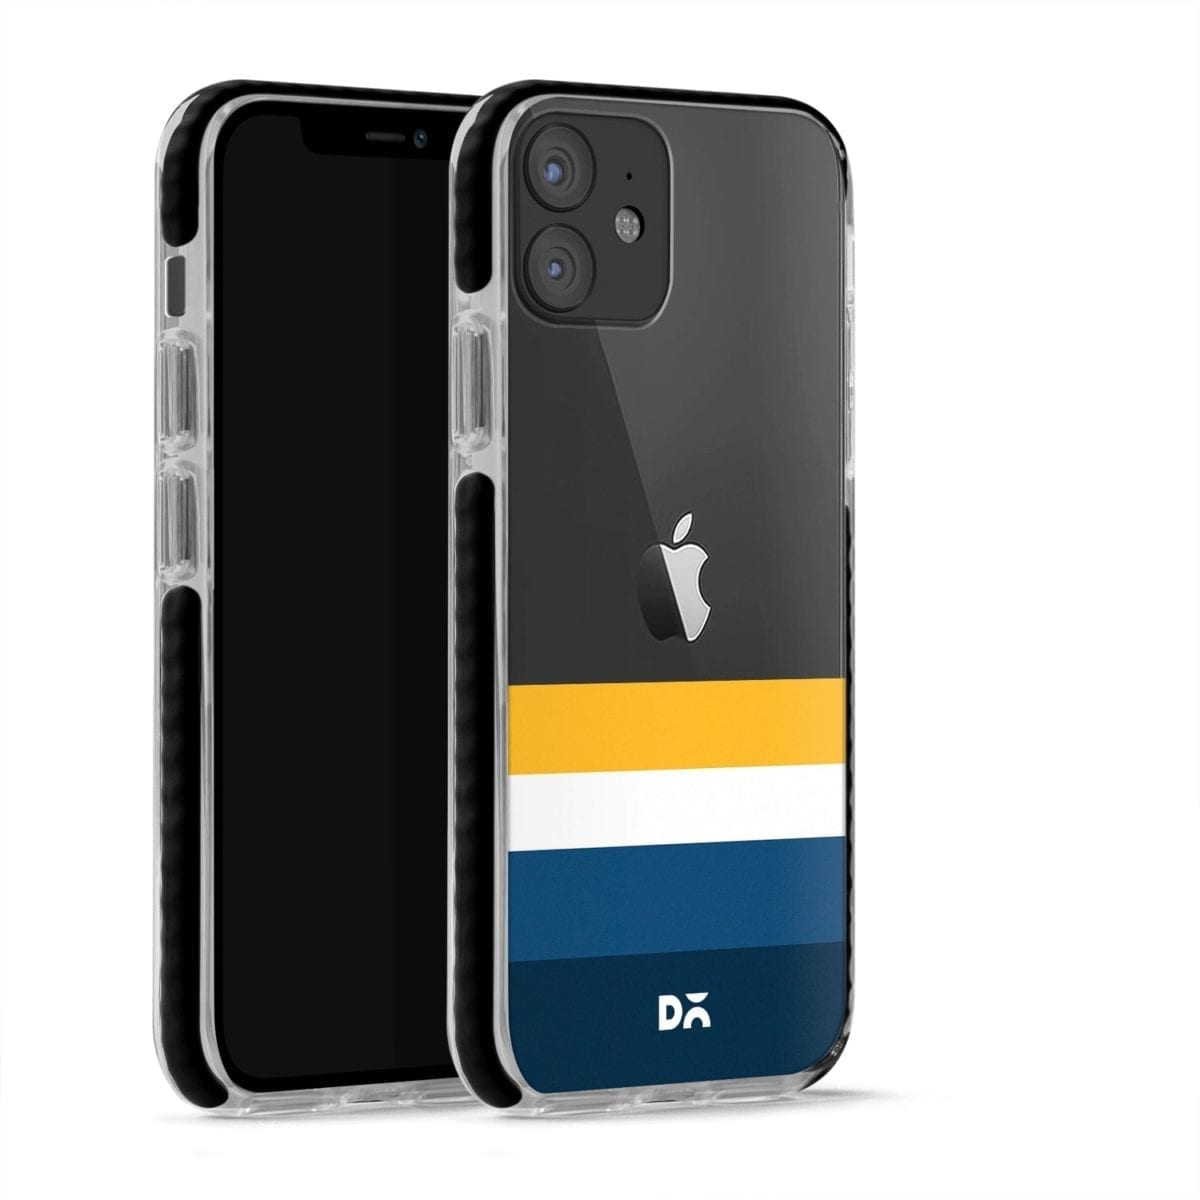 Sunrise Quad Clear Stride Case Cover for Apple iPhone 12 Mini and Apple iPhone 12 with great design and shock proof | Klippik | Online Shopping | Kuwait UAE Saudi